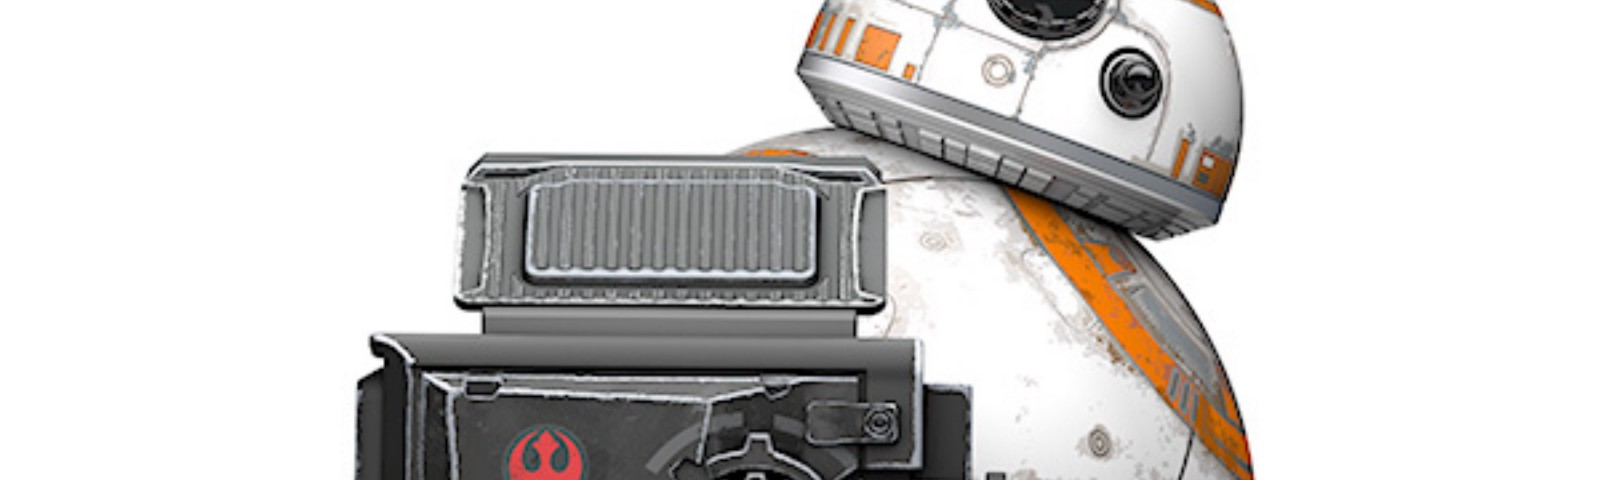 Sphero Force Band For BB-8 1